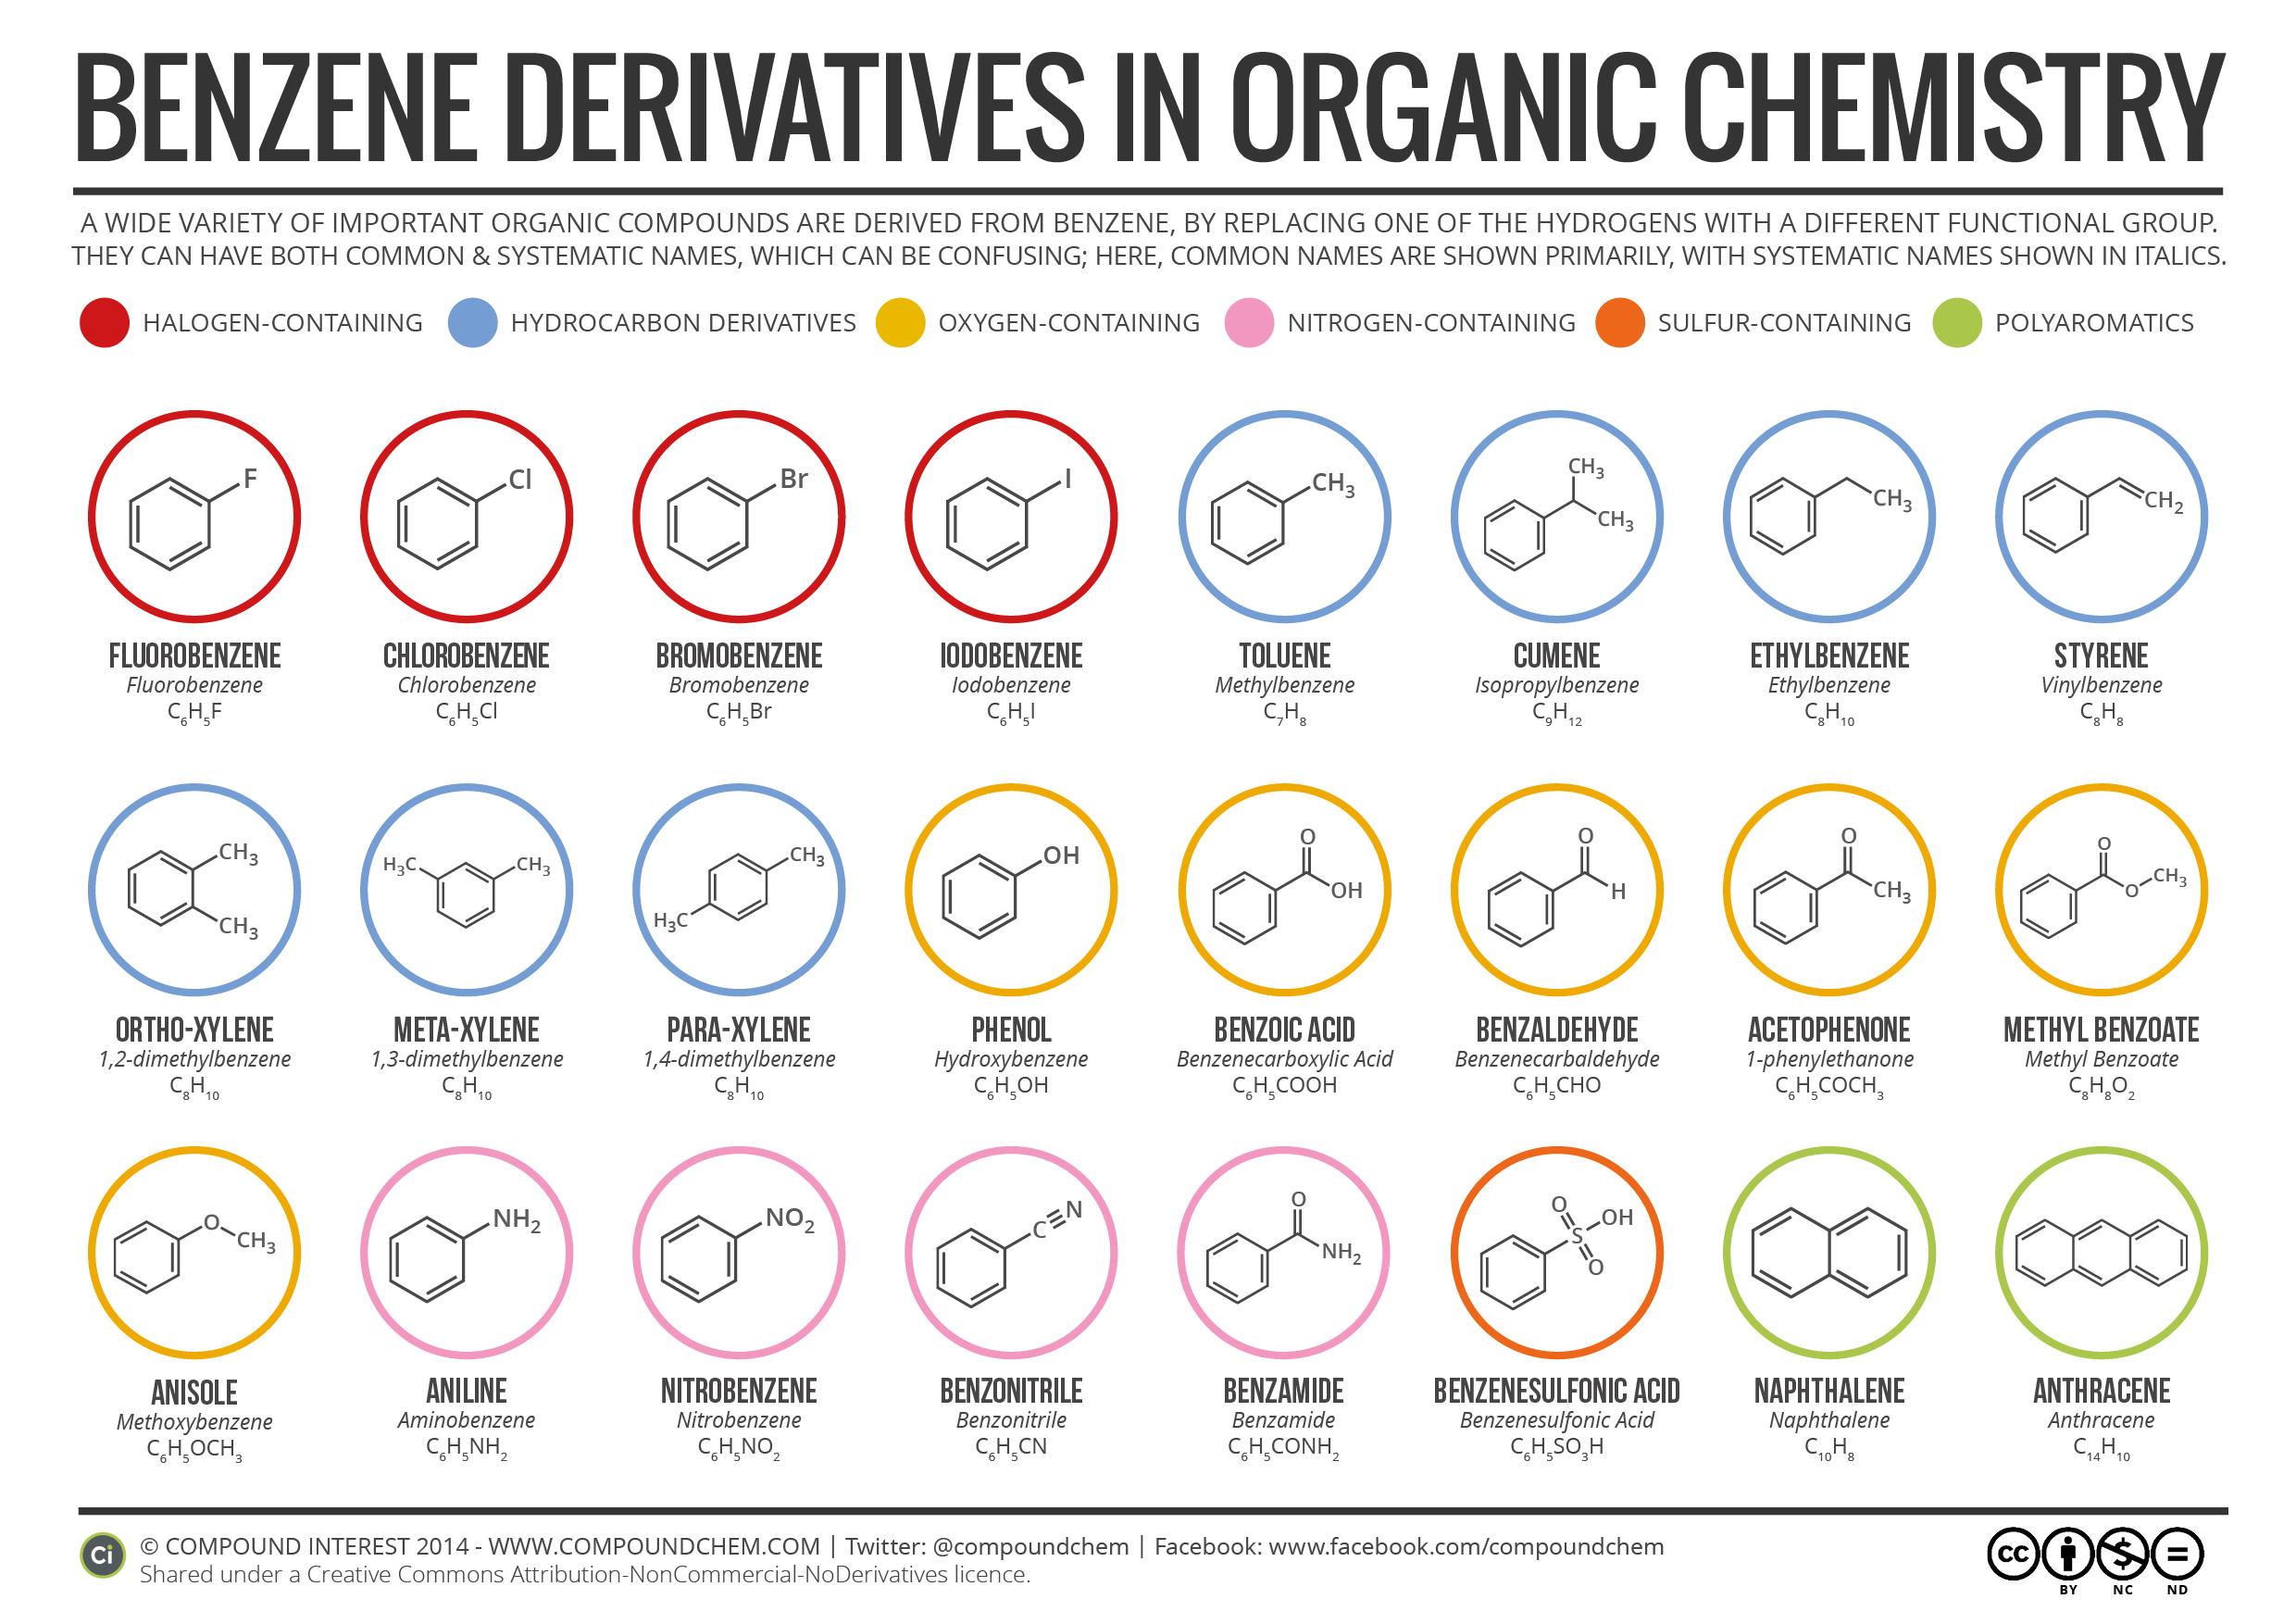 http://www.compoundchem.com/2014/09/01/benzene-derivatives-in-organic-chemistry/